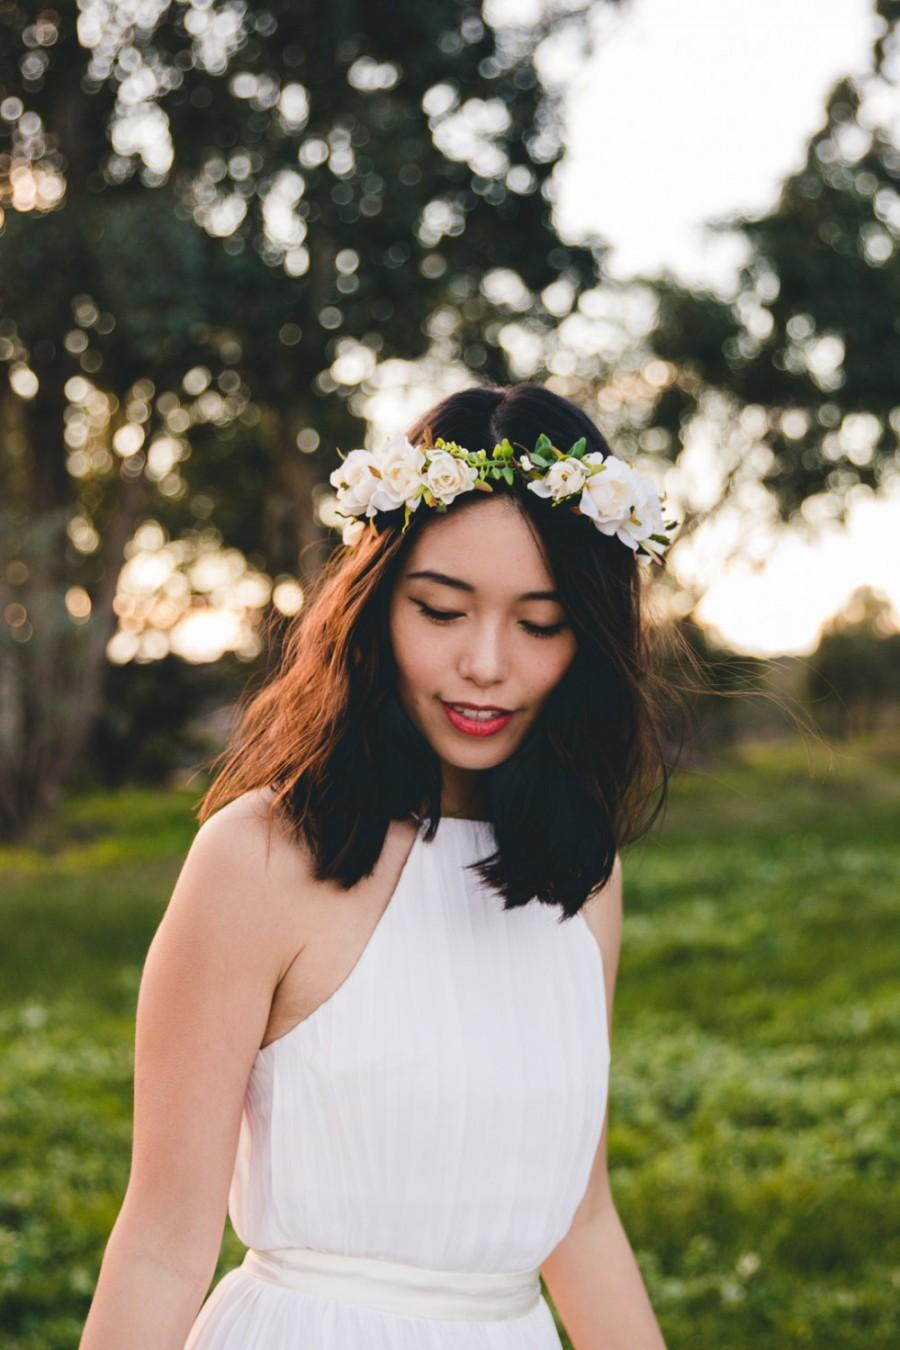 Blossom and forest bridal wedding flower crown flore cream blossom and forest bridal wedding flower crown flore cream bohemian floral headpiece flower crown izmirmasajfo